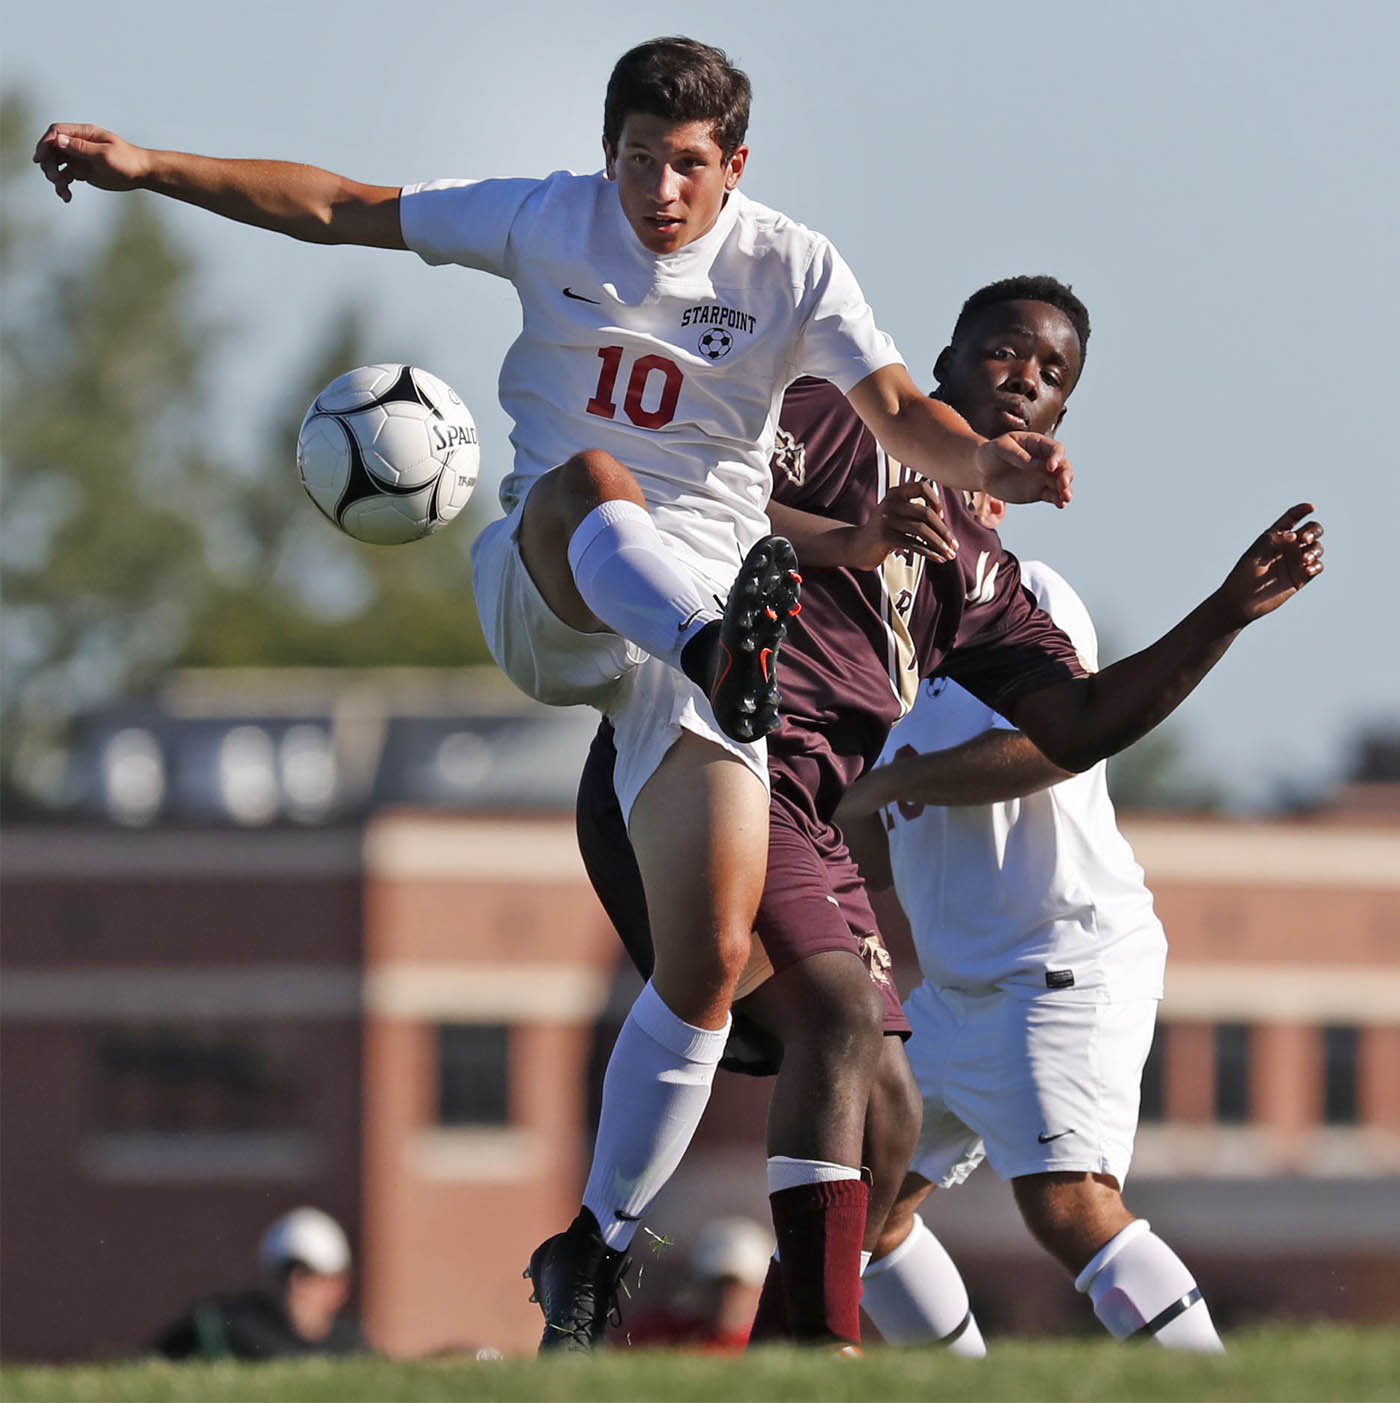 Pictures, Cheektowaga's Yanick Ndjibu battle for a loose ball with Starpoint's Max Balko during first half action at Starpoint high school on Monday, Sept. 12, 2016. (Harry Scull Jr./Buffalo News)